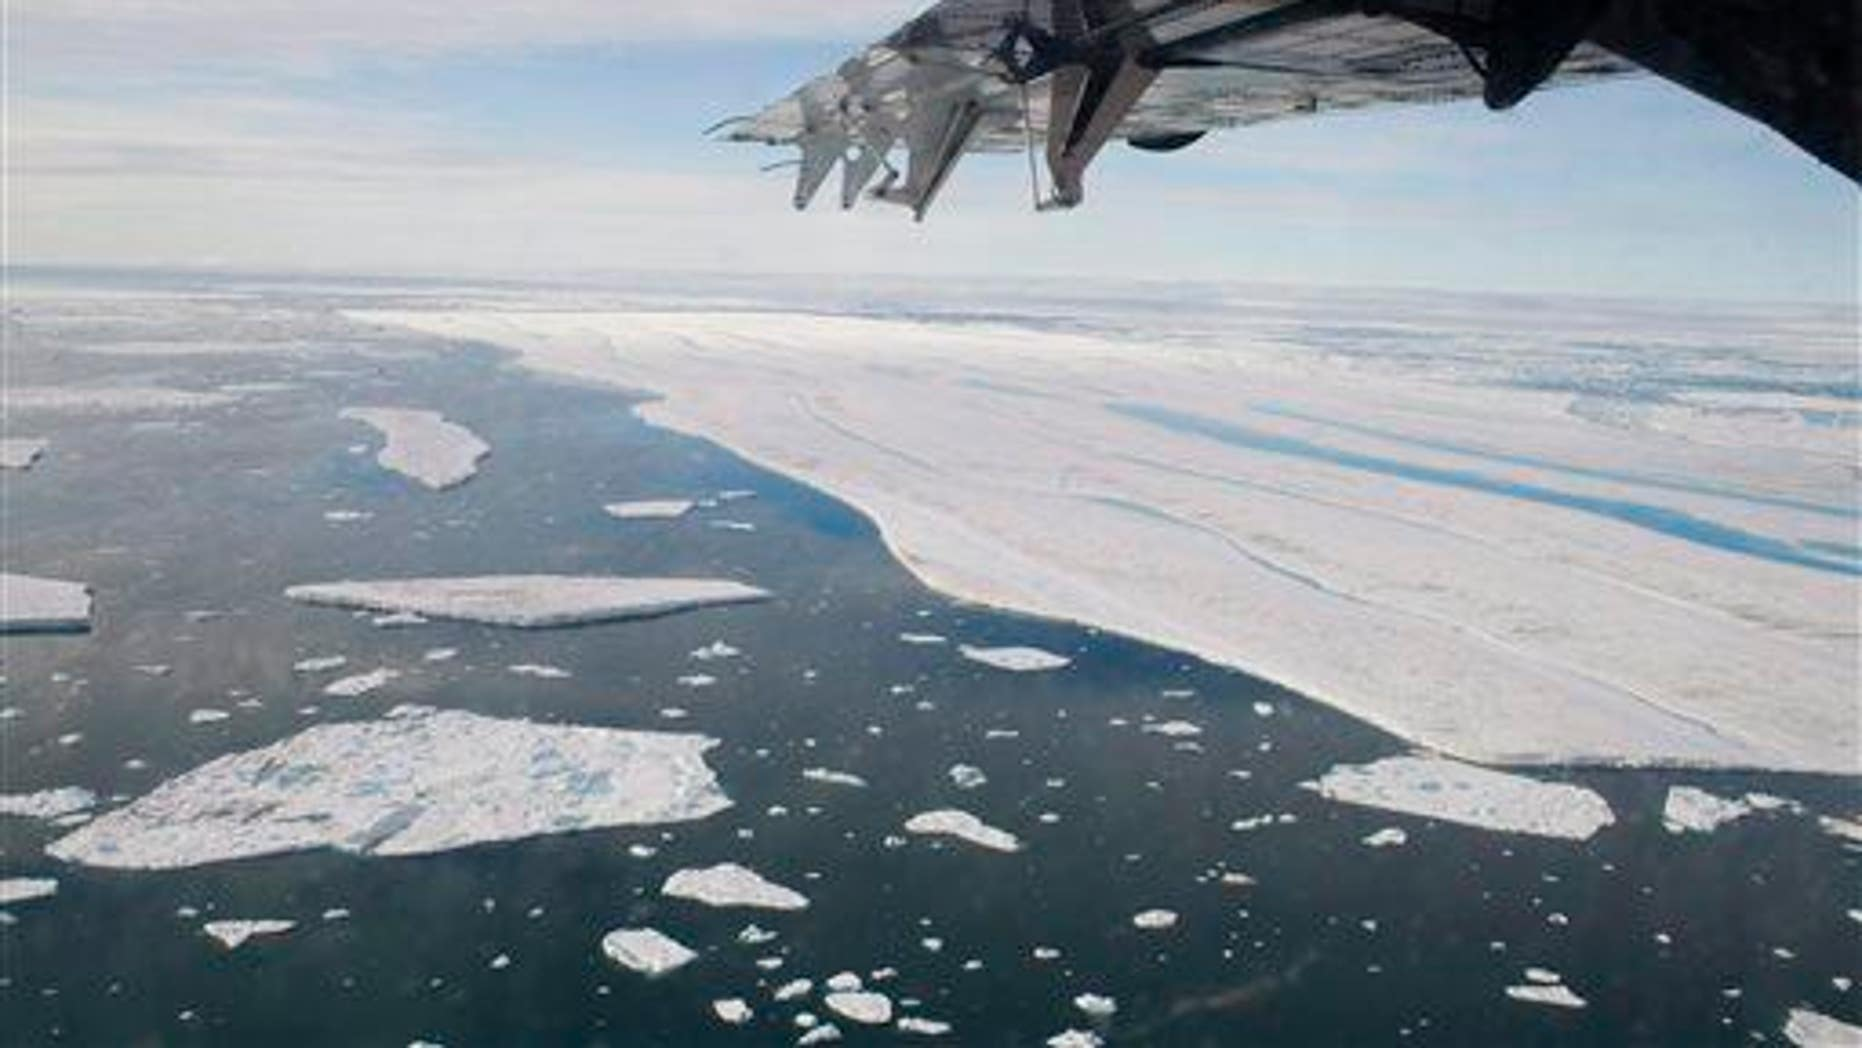 In this July 27, 2008 photo, a chunk of ice is shown drifting after it separated from the Ward Hunt Ice Shelf off the north coast of Ellesmere Island in Canada's far north.